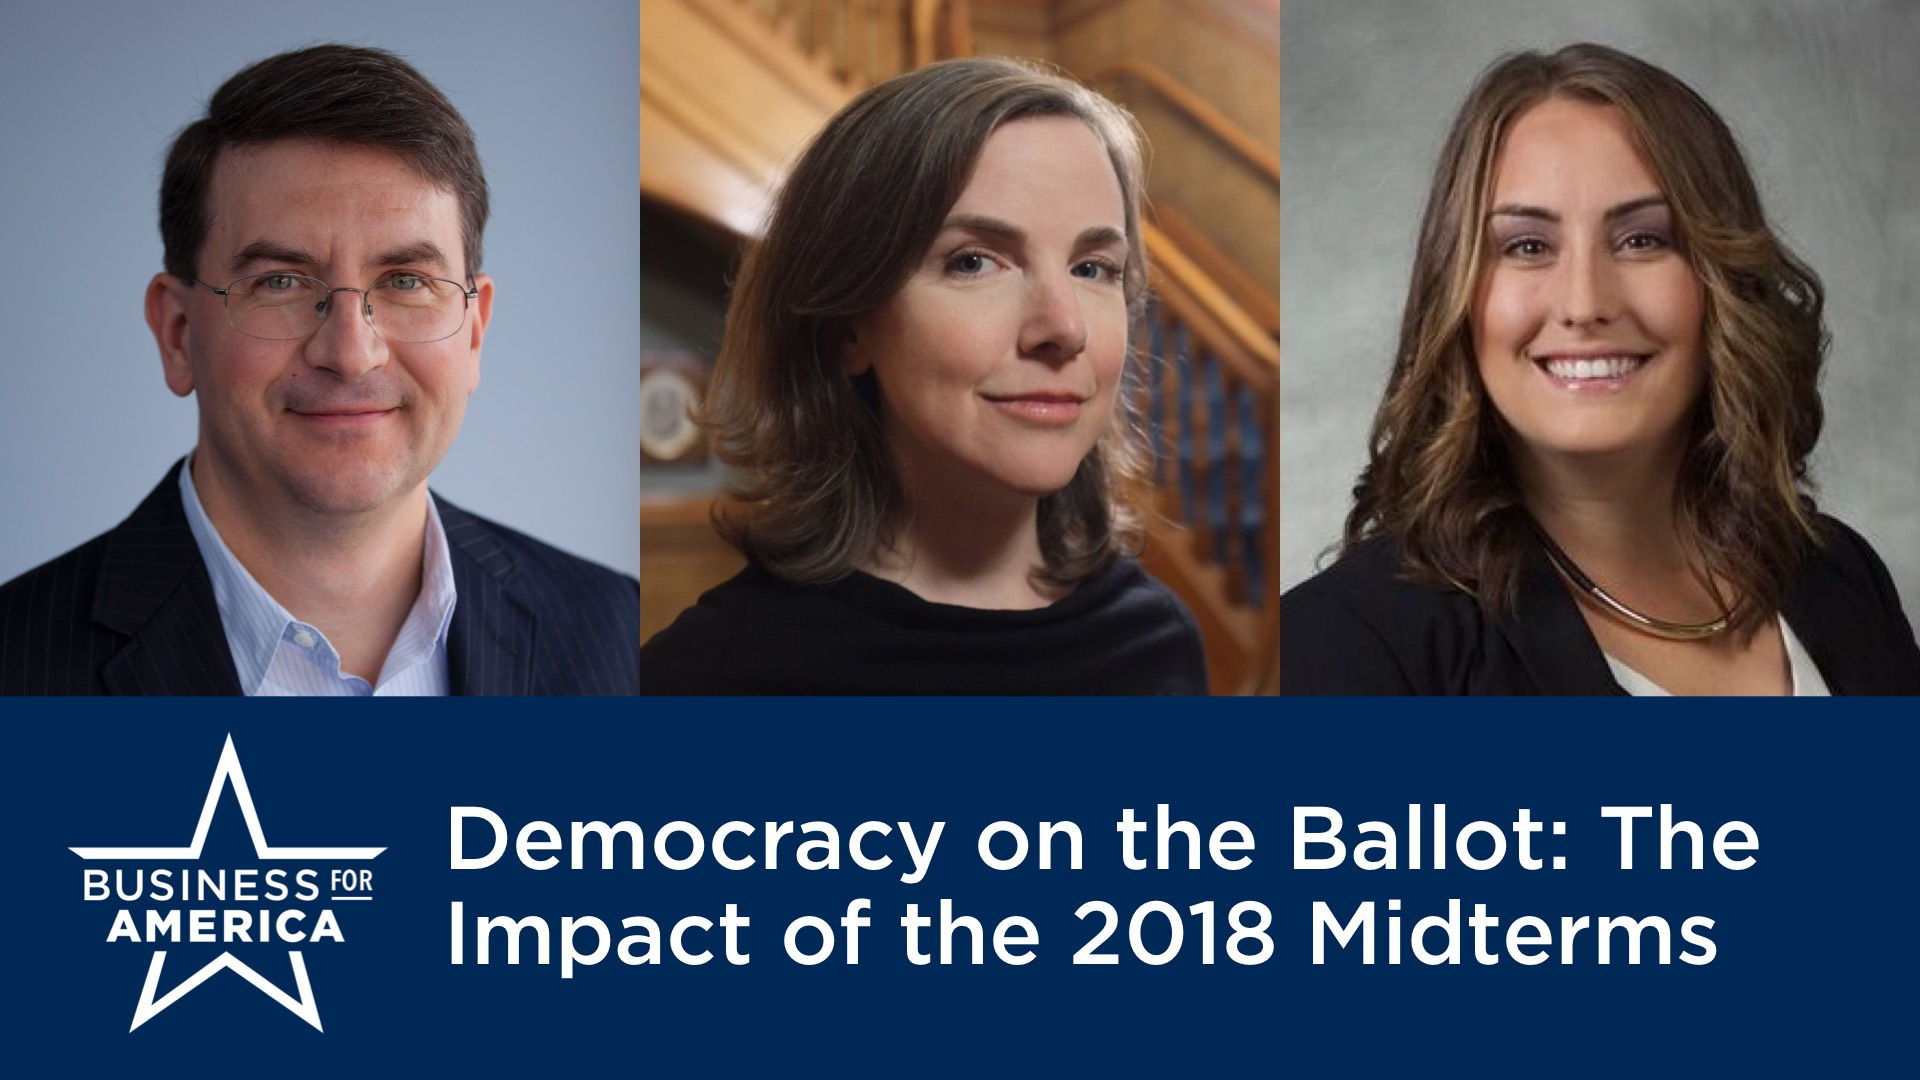 Democracy on the Ballot: The Impact of the 2018 Midterms